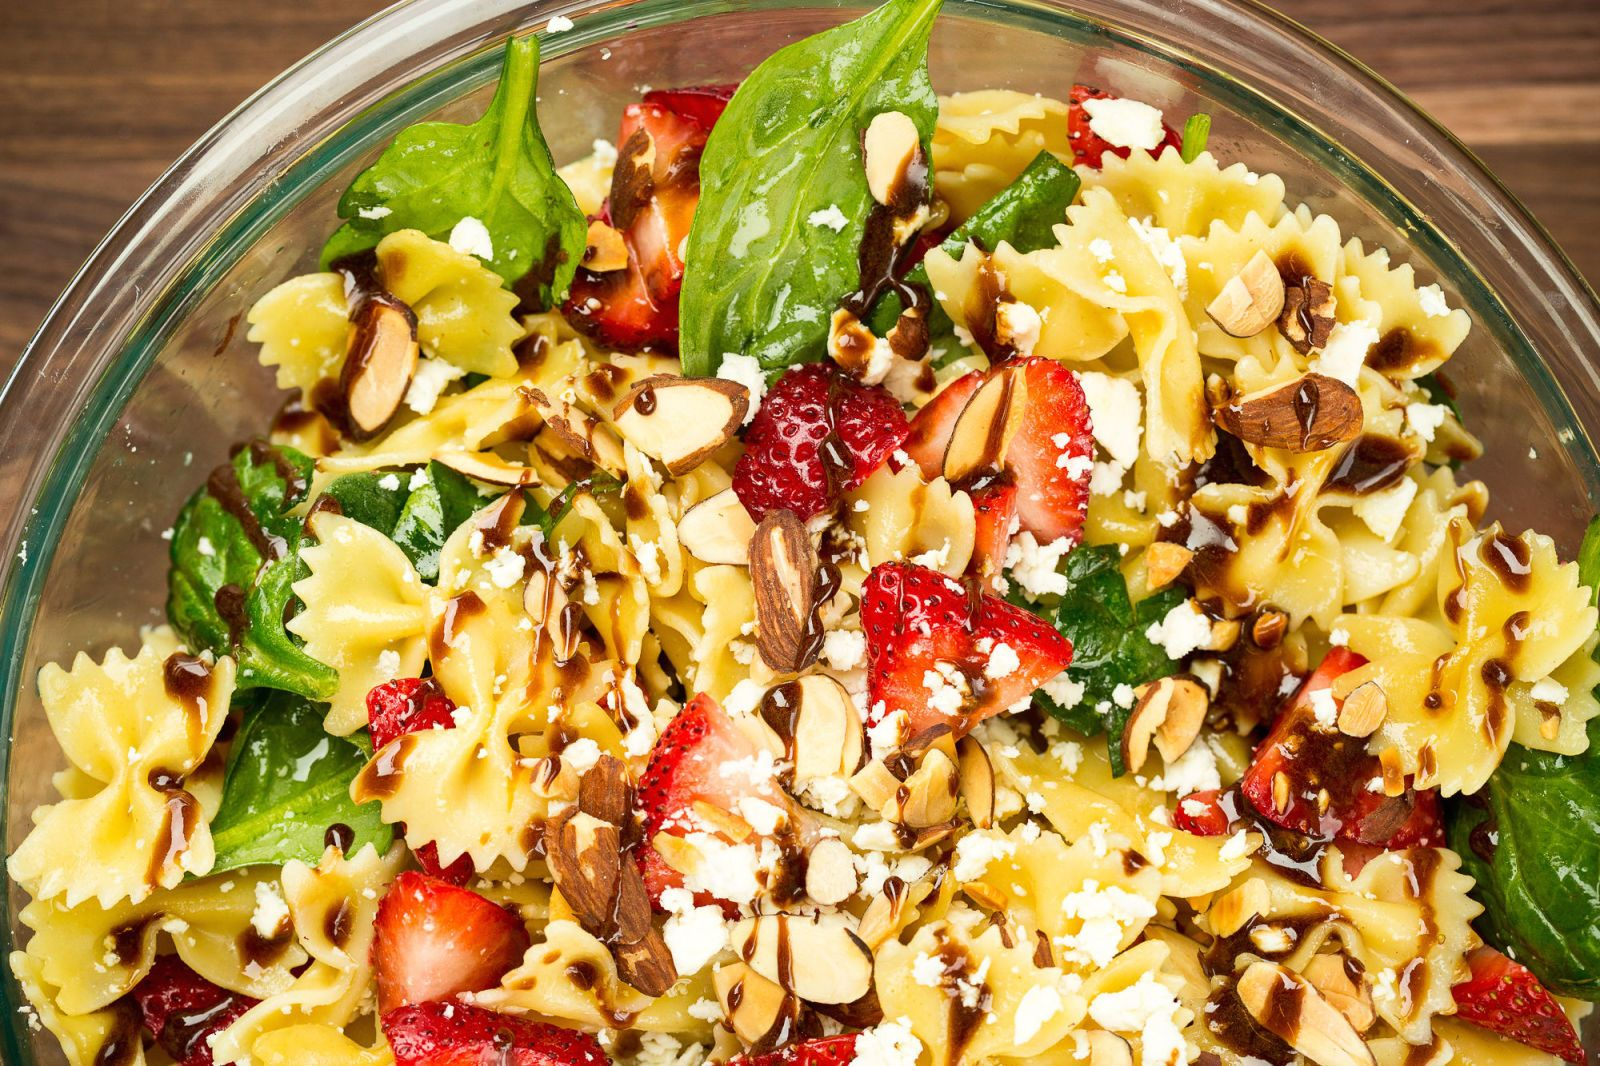 easy strawberry pasta salad recipe perfect for a summer picnic